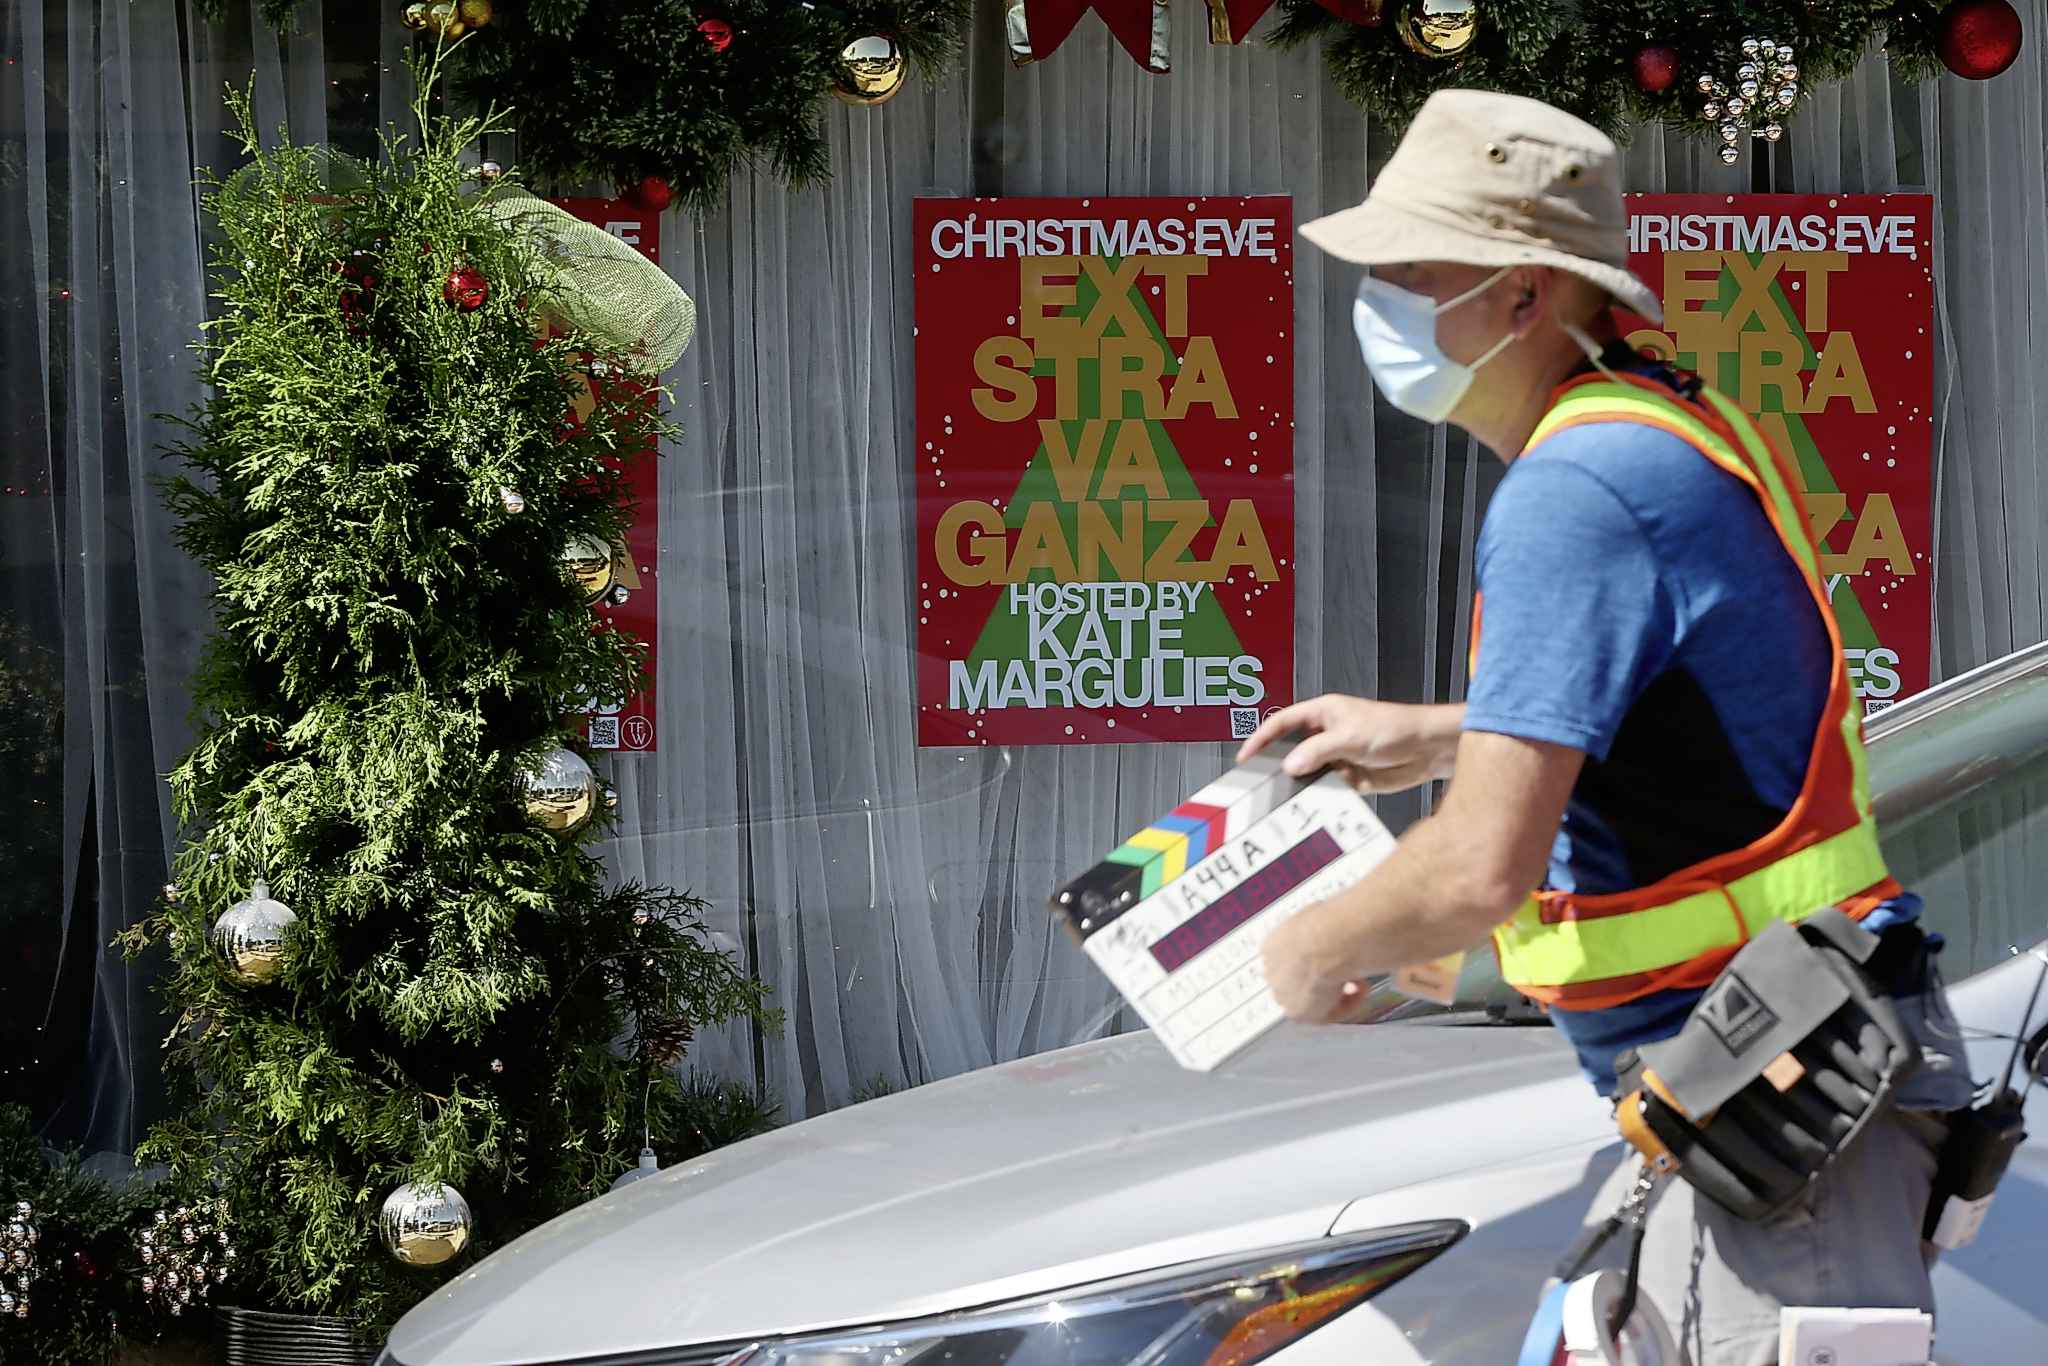 SHANNON VANRAES/WINNIPEG FREE PRESS  Christmas signs and decorations hang in shop windows during the film production.